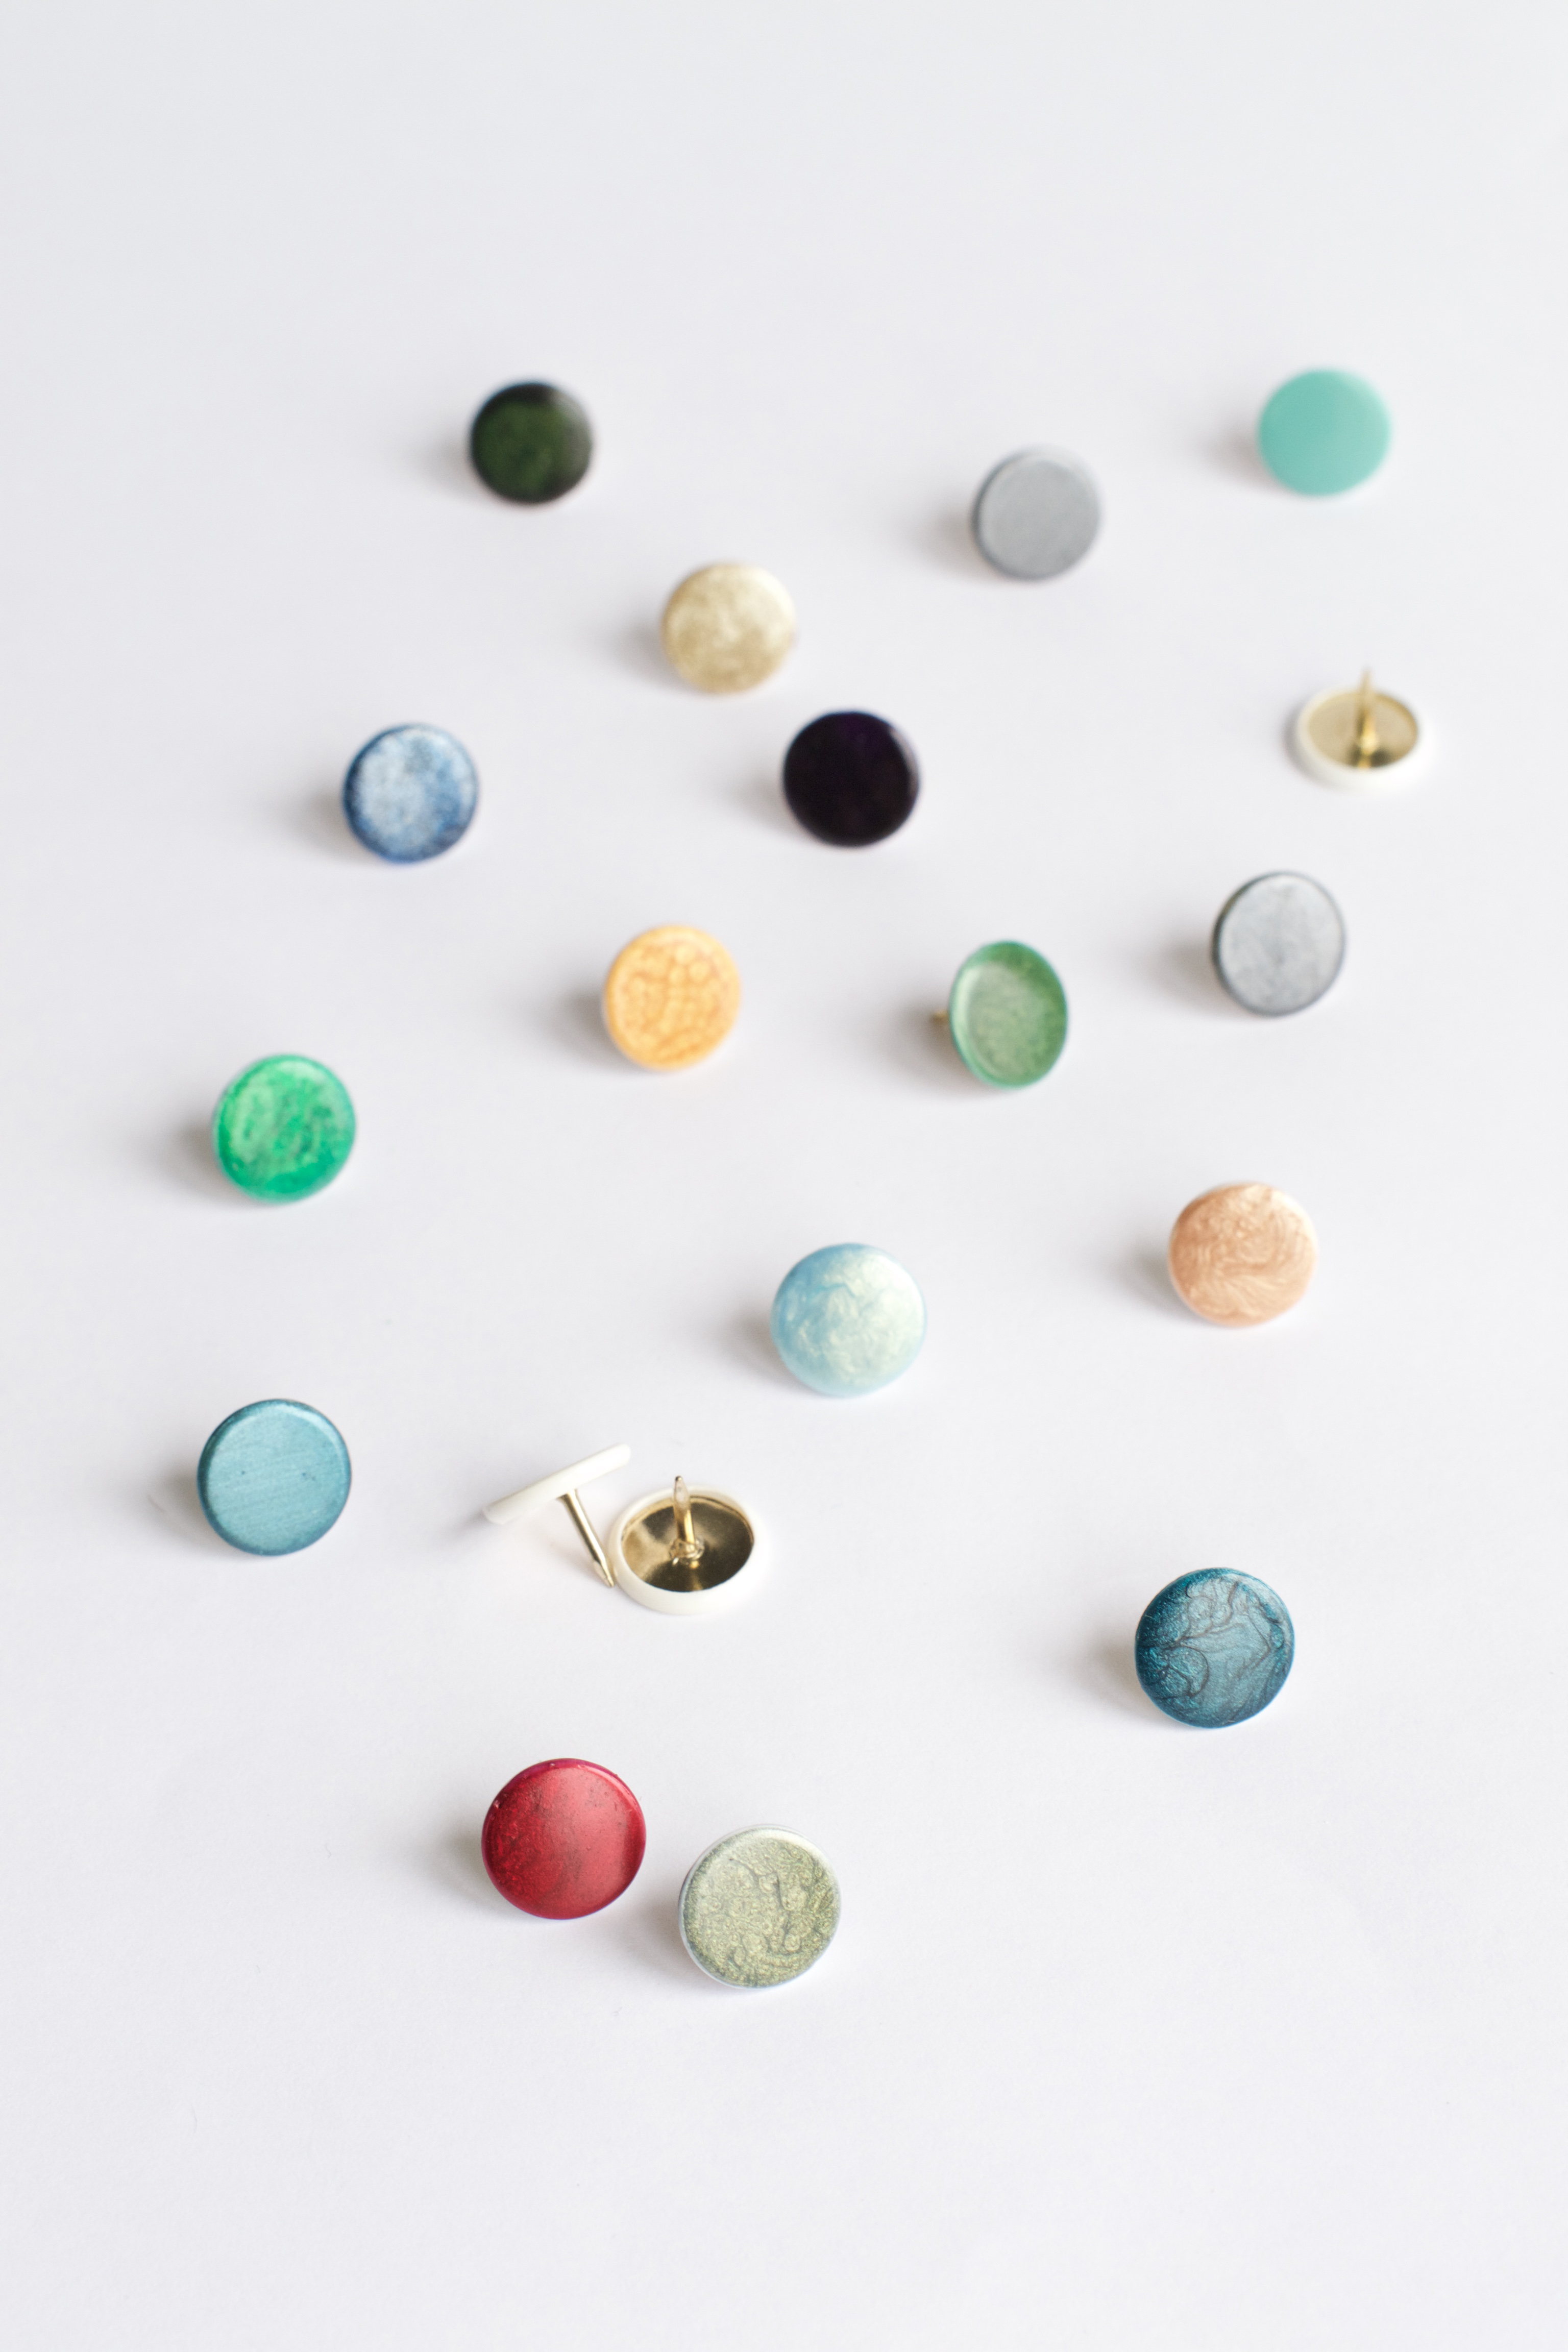 DIY Nail Polish Thumbtacks Tutorial + Marbled Thumbtacks - HUNGRY HEART